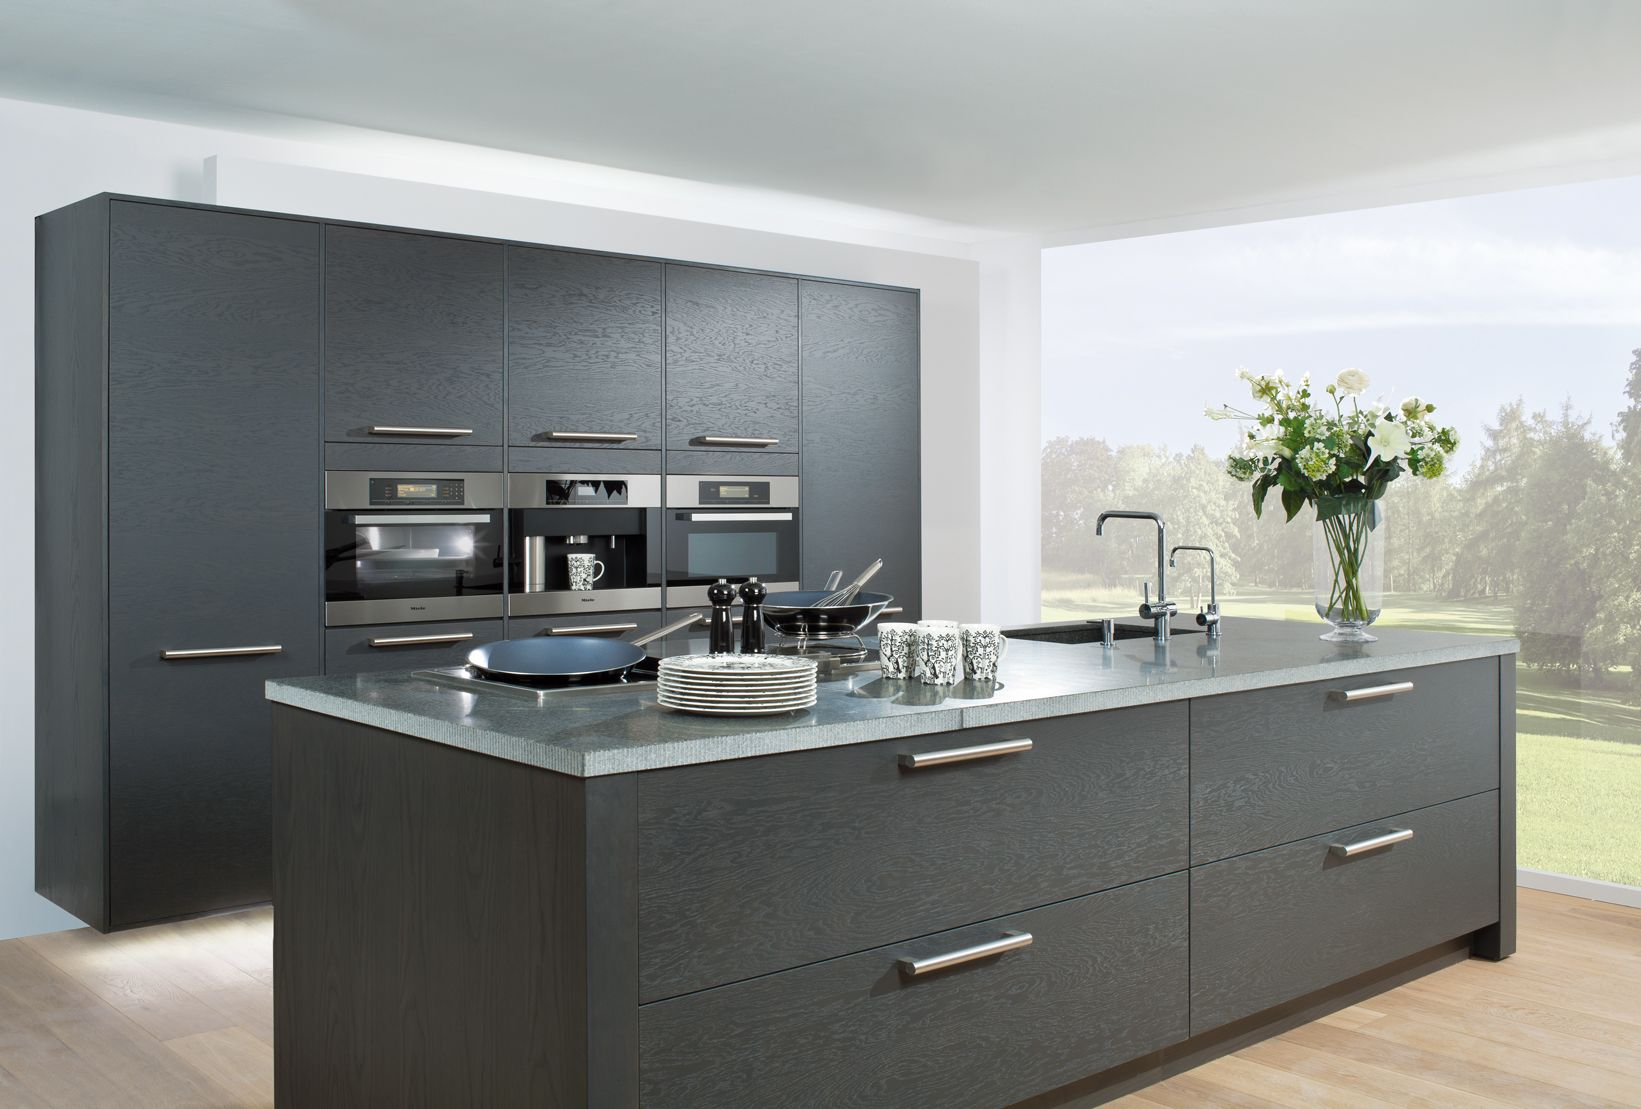 Best Alluring Grey Kitchen Design Inspirations Amazing Grey 400 x 300